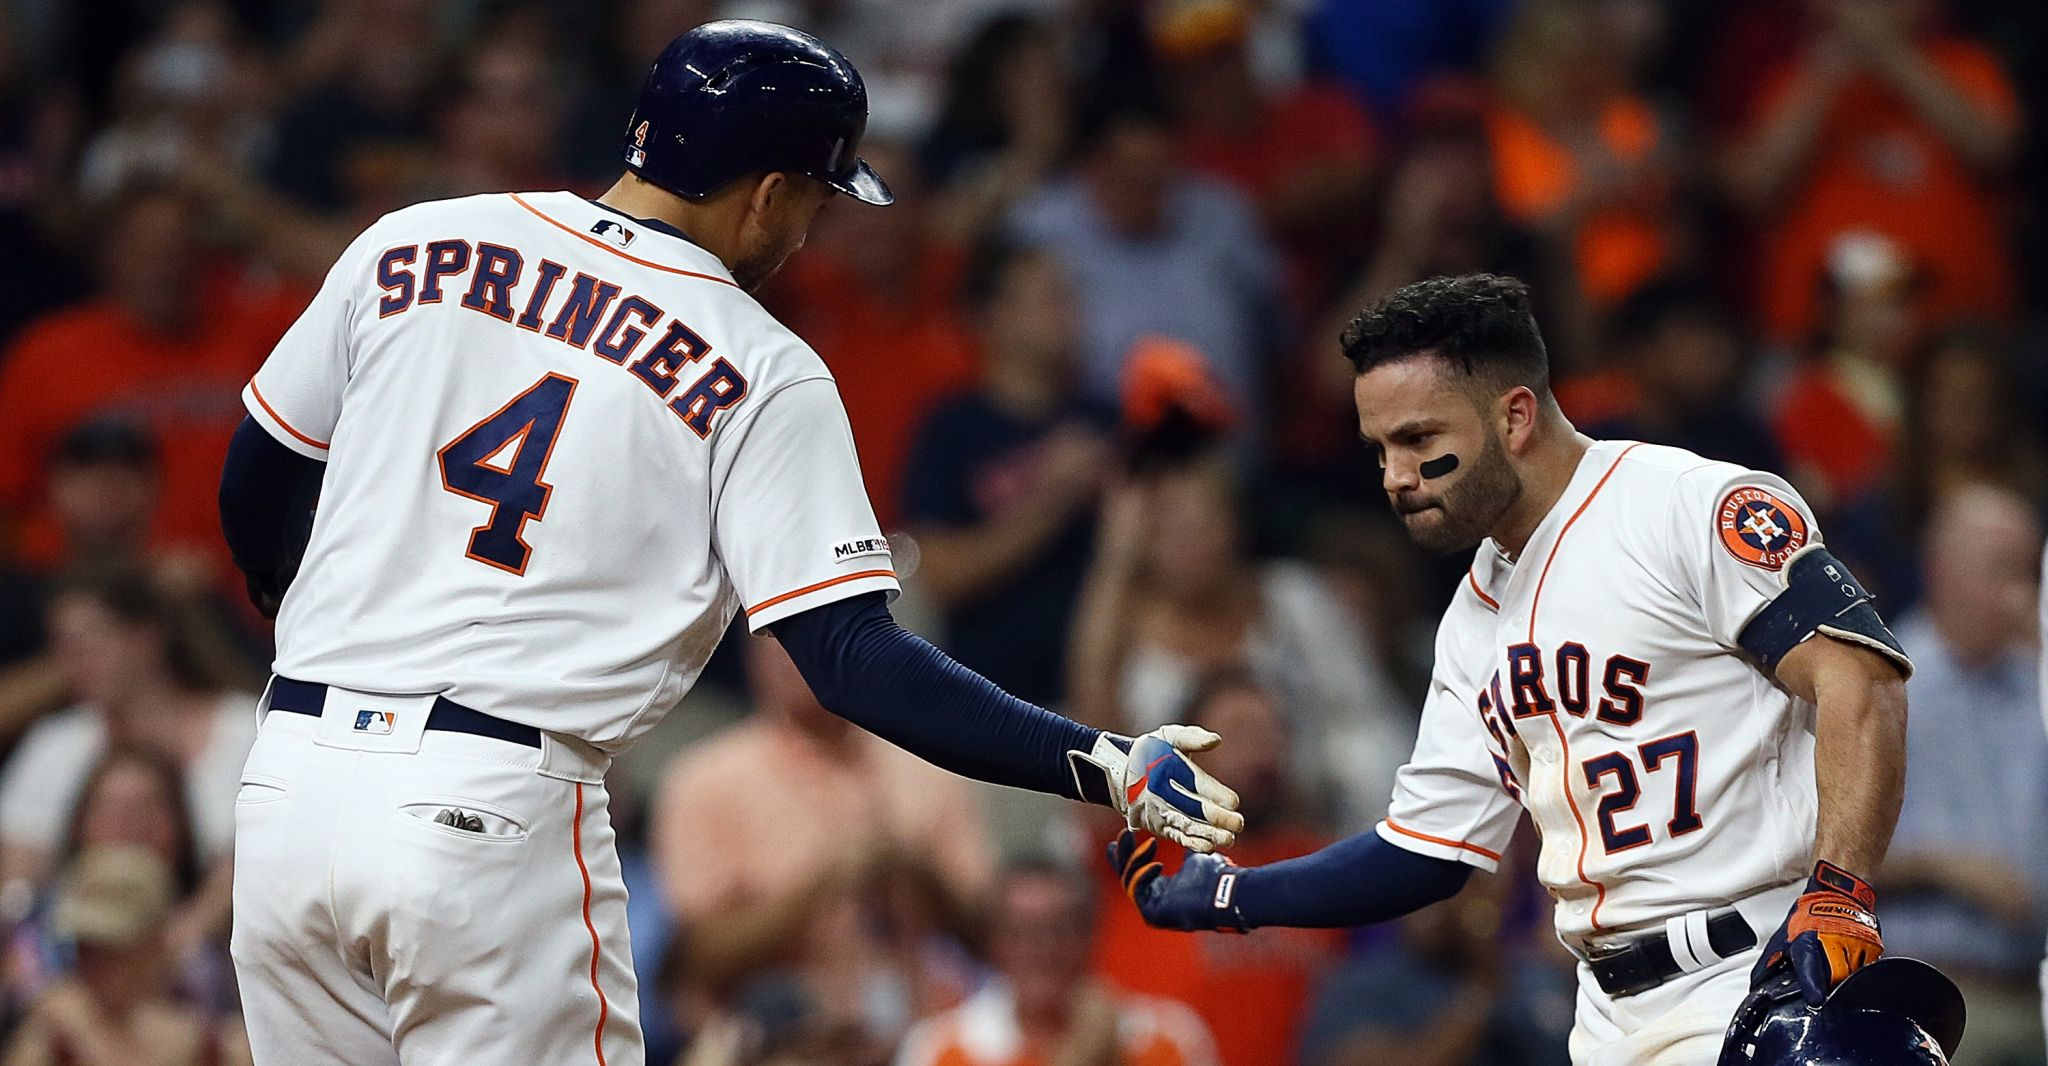 George Springer, José Altuve get the day off as Astros continue to rest for postseason